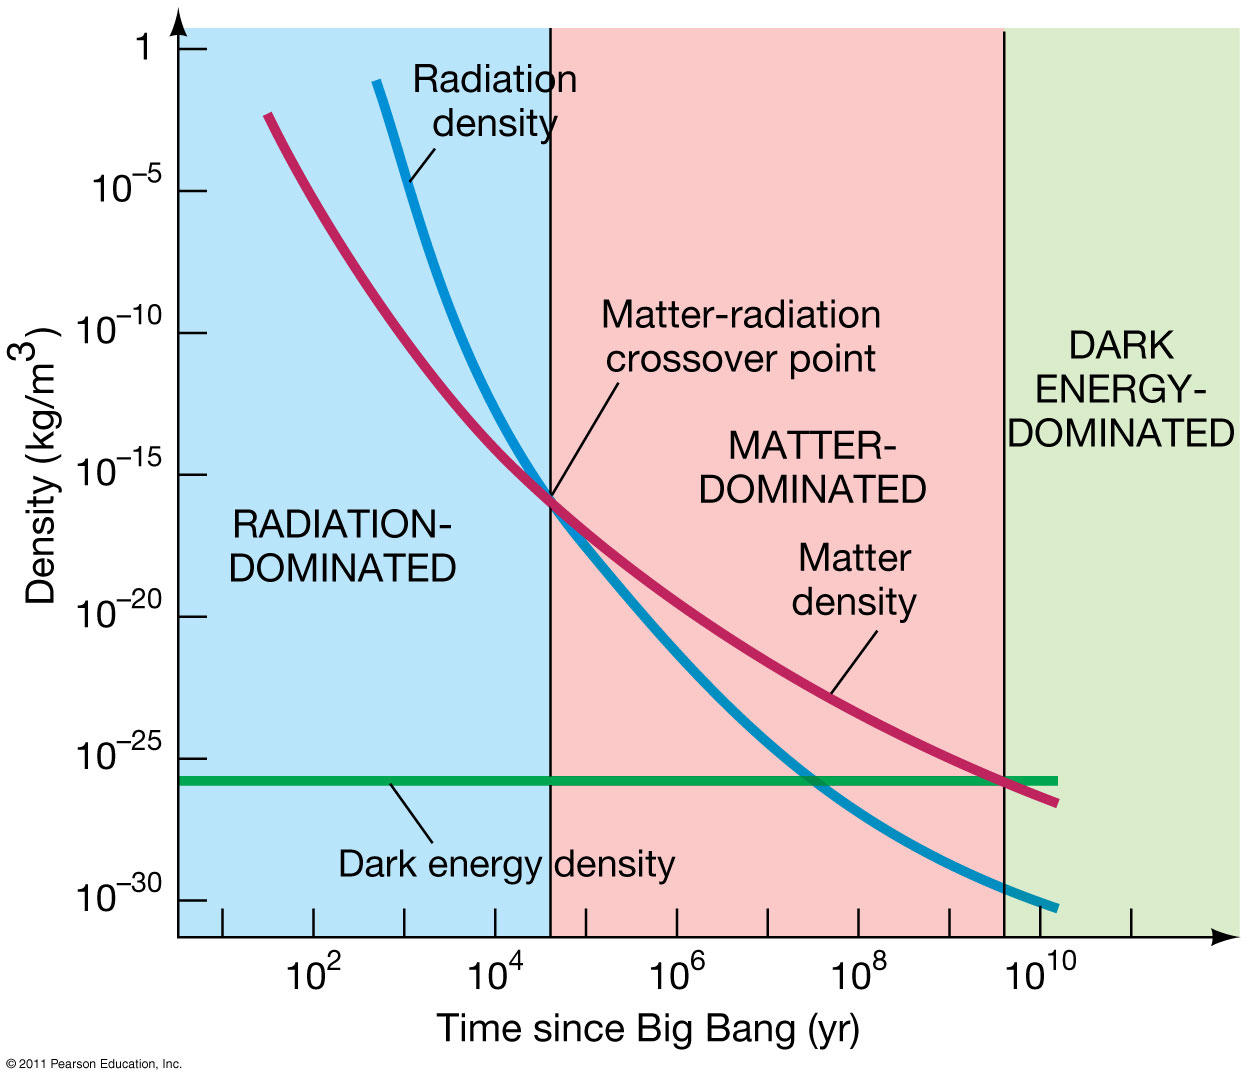 Figure 1: As you can see from the graph above, for the first roughly 10,000 years most of the energy density in the universe was due to the presence of radiation. During the time interval from when the universe was 10,000 years old to when it was several billion years old, the energy density of the universe was dominated by matter. In our present epoch, the energy density of the universe is dominated by dark energy (or vacuum energy). This graph has profound implications. As time progresses, dark energy will become more and more dominant and will remain the dominant source of energy in the universe; since dark energy causes everything in the universe to expand, the universe will continue to expand without ever stopping. This graph, essentially, implies the ultimate fate of the universe. The universe will continue to expand more and more until it becomes dark, empty, and lifeless.